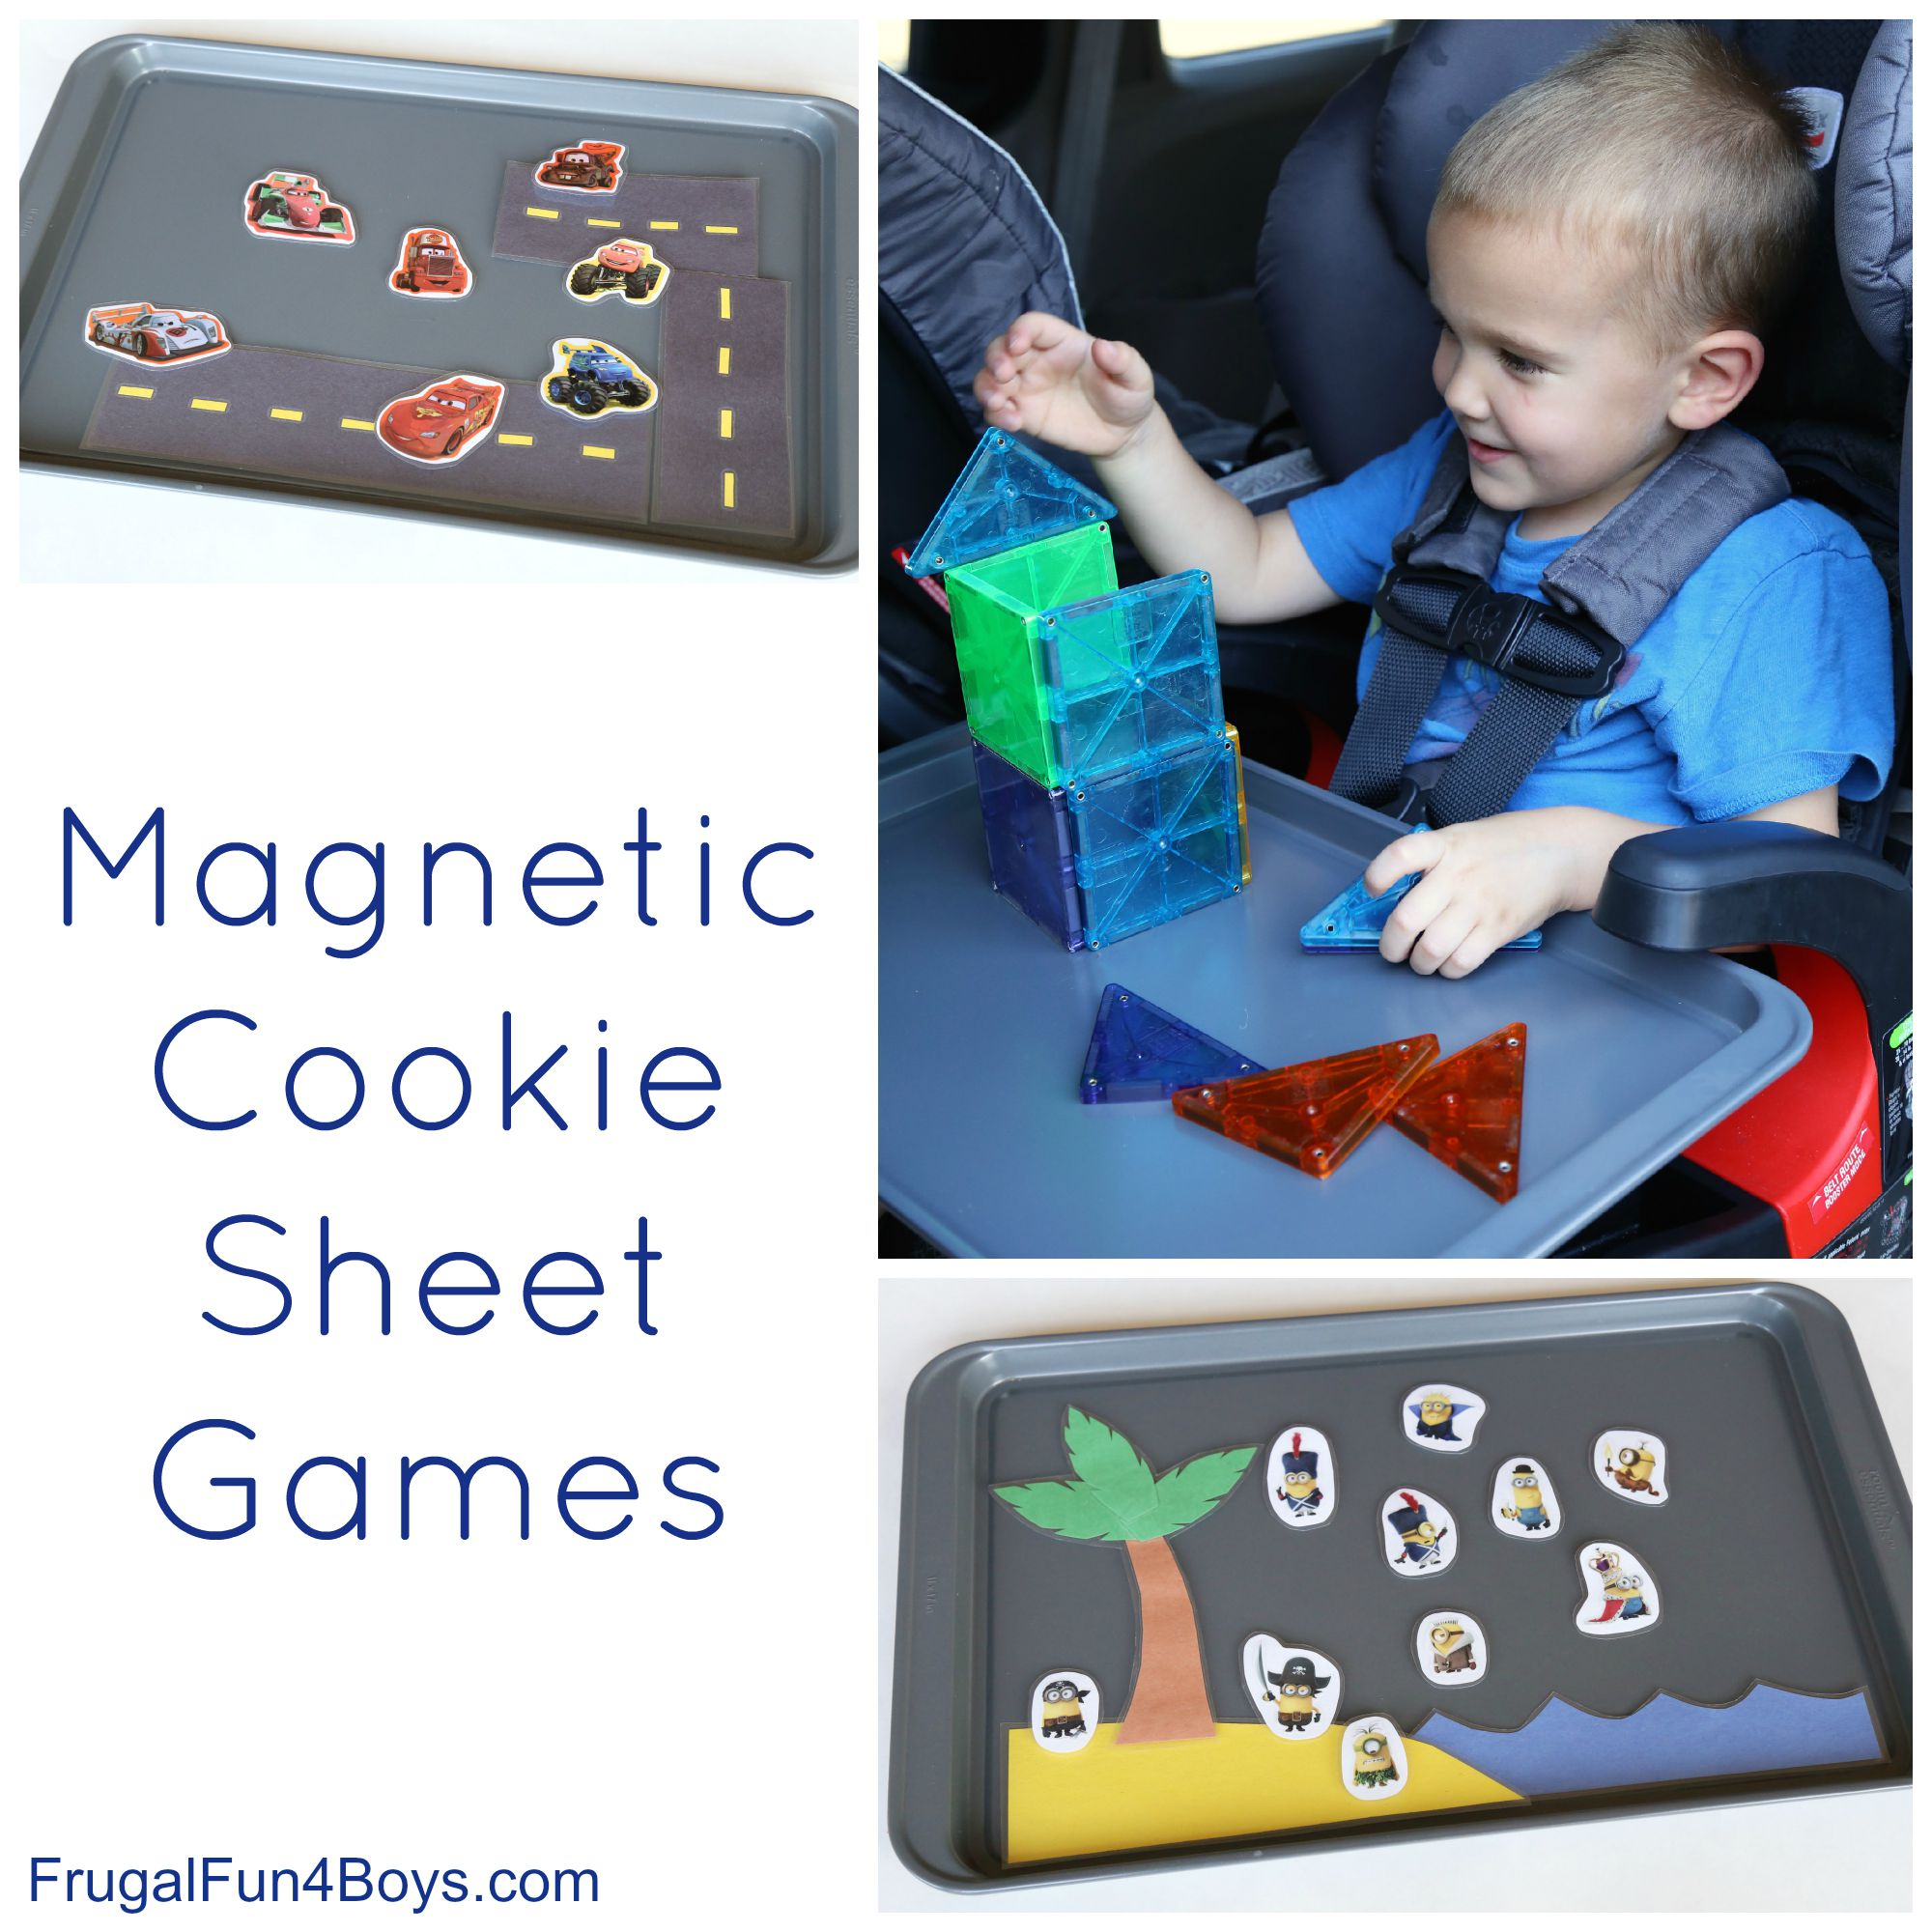 Magnetic Cookie Sheet Games